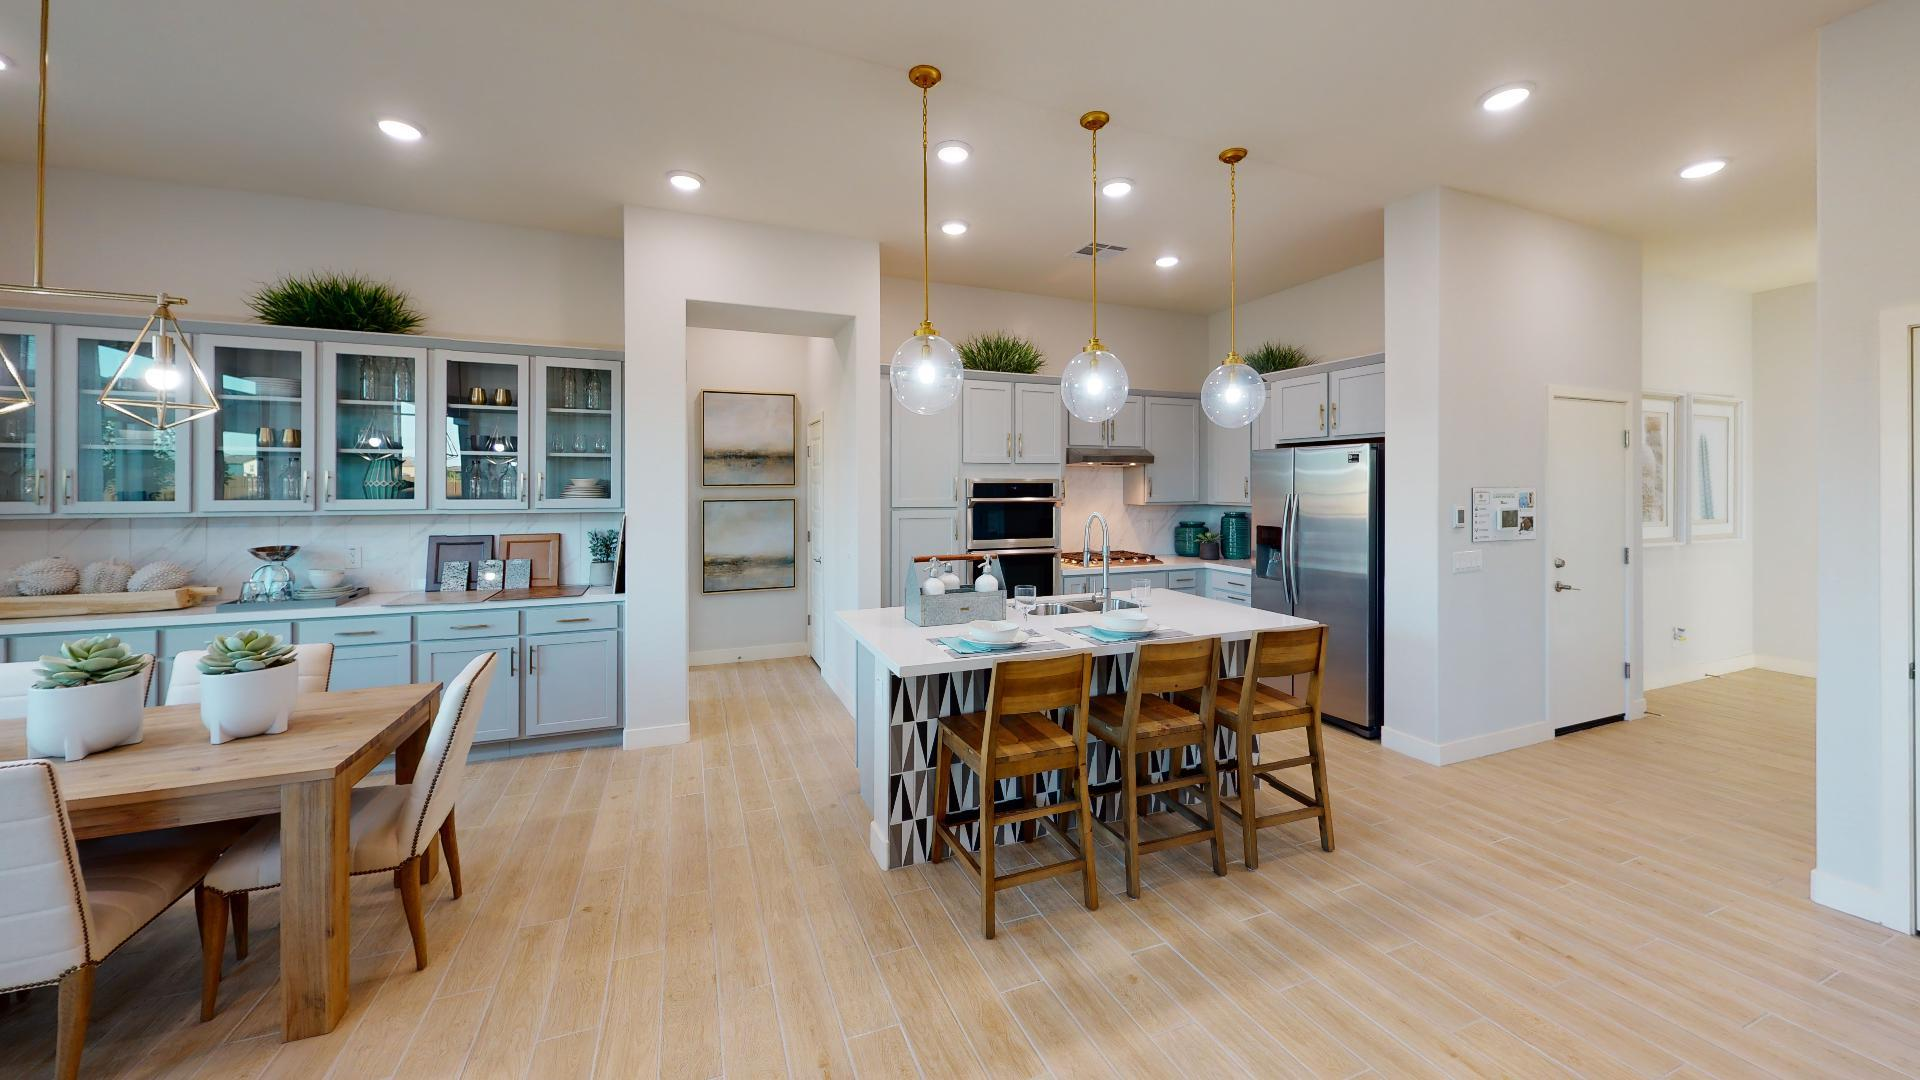 Kitchen featured in the Brookside By Cresleigh Homes Arizona, Inc. in Phoenix-Mesa, AZ